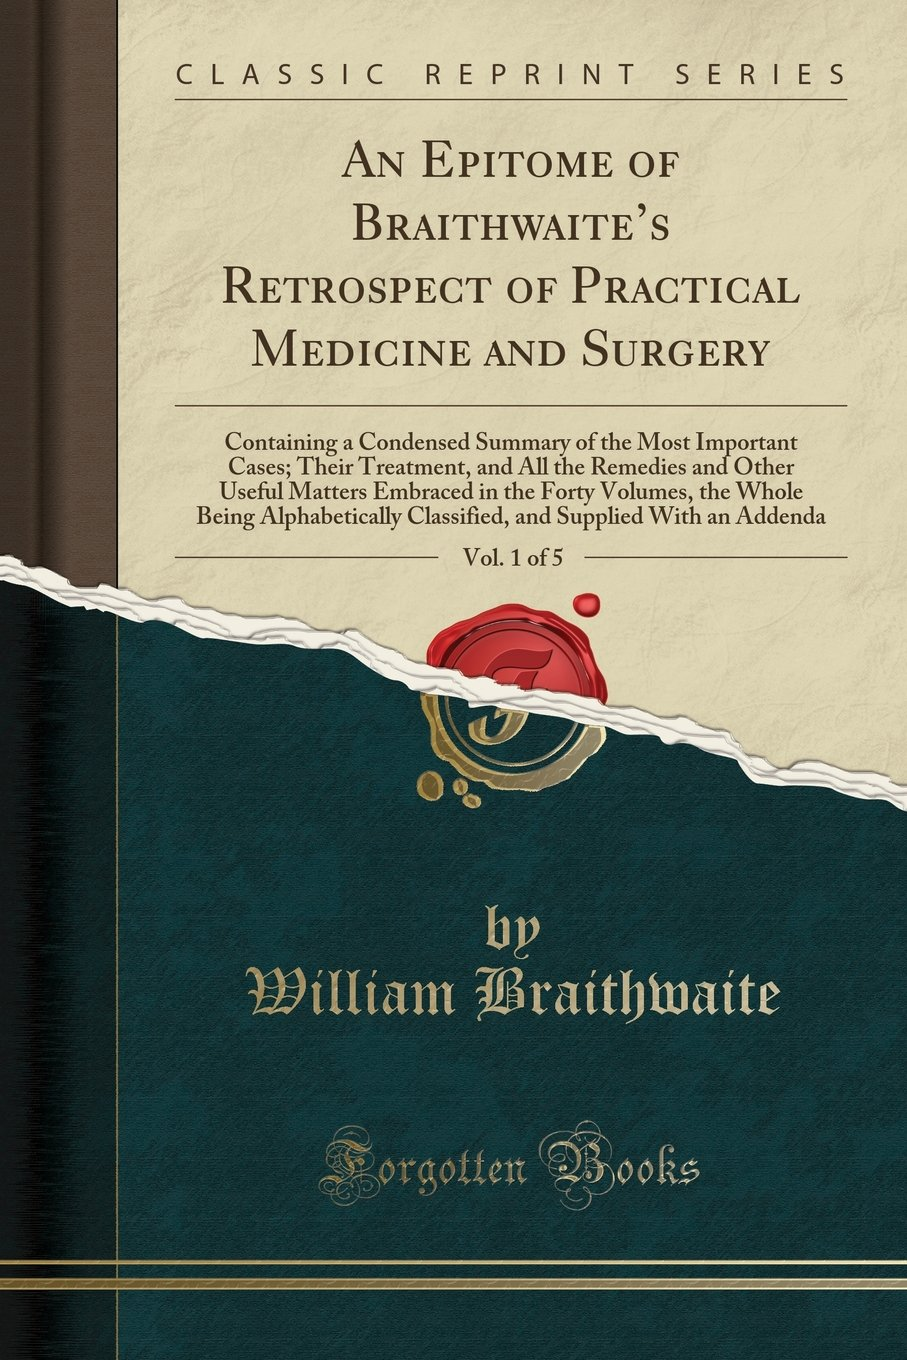 Download An Epitome of Braithwaite's Retrospect of Practical Medicine and Surgery, Vol. 1 of 5: Containing a Condensed Summary of the Most Important Cases; ... Embraced in the Forty Volumes, the Whole Be ebook